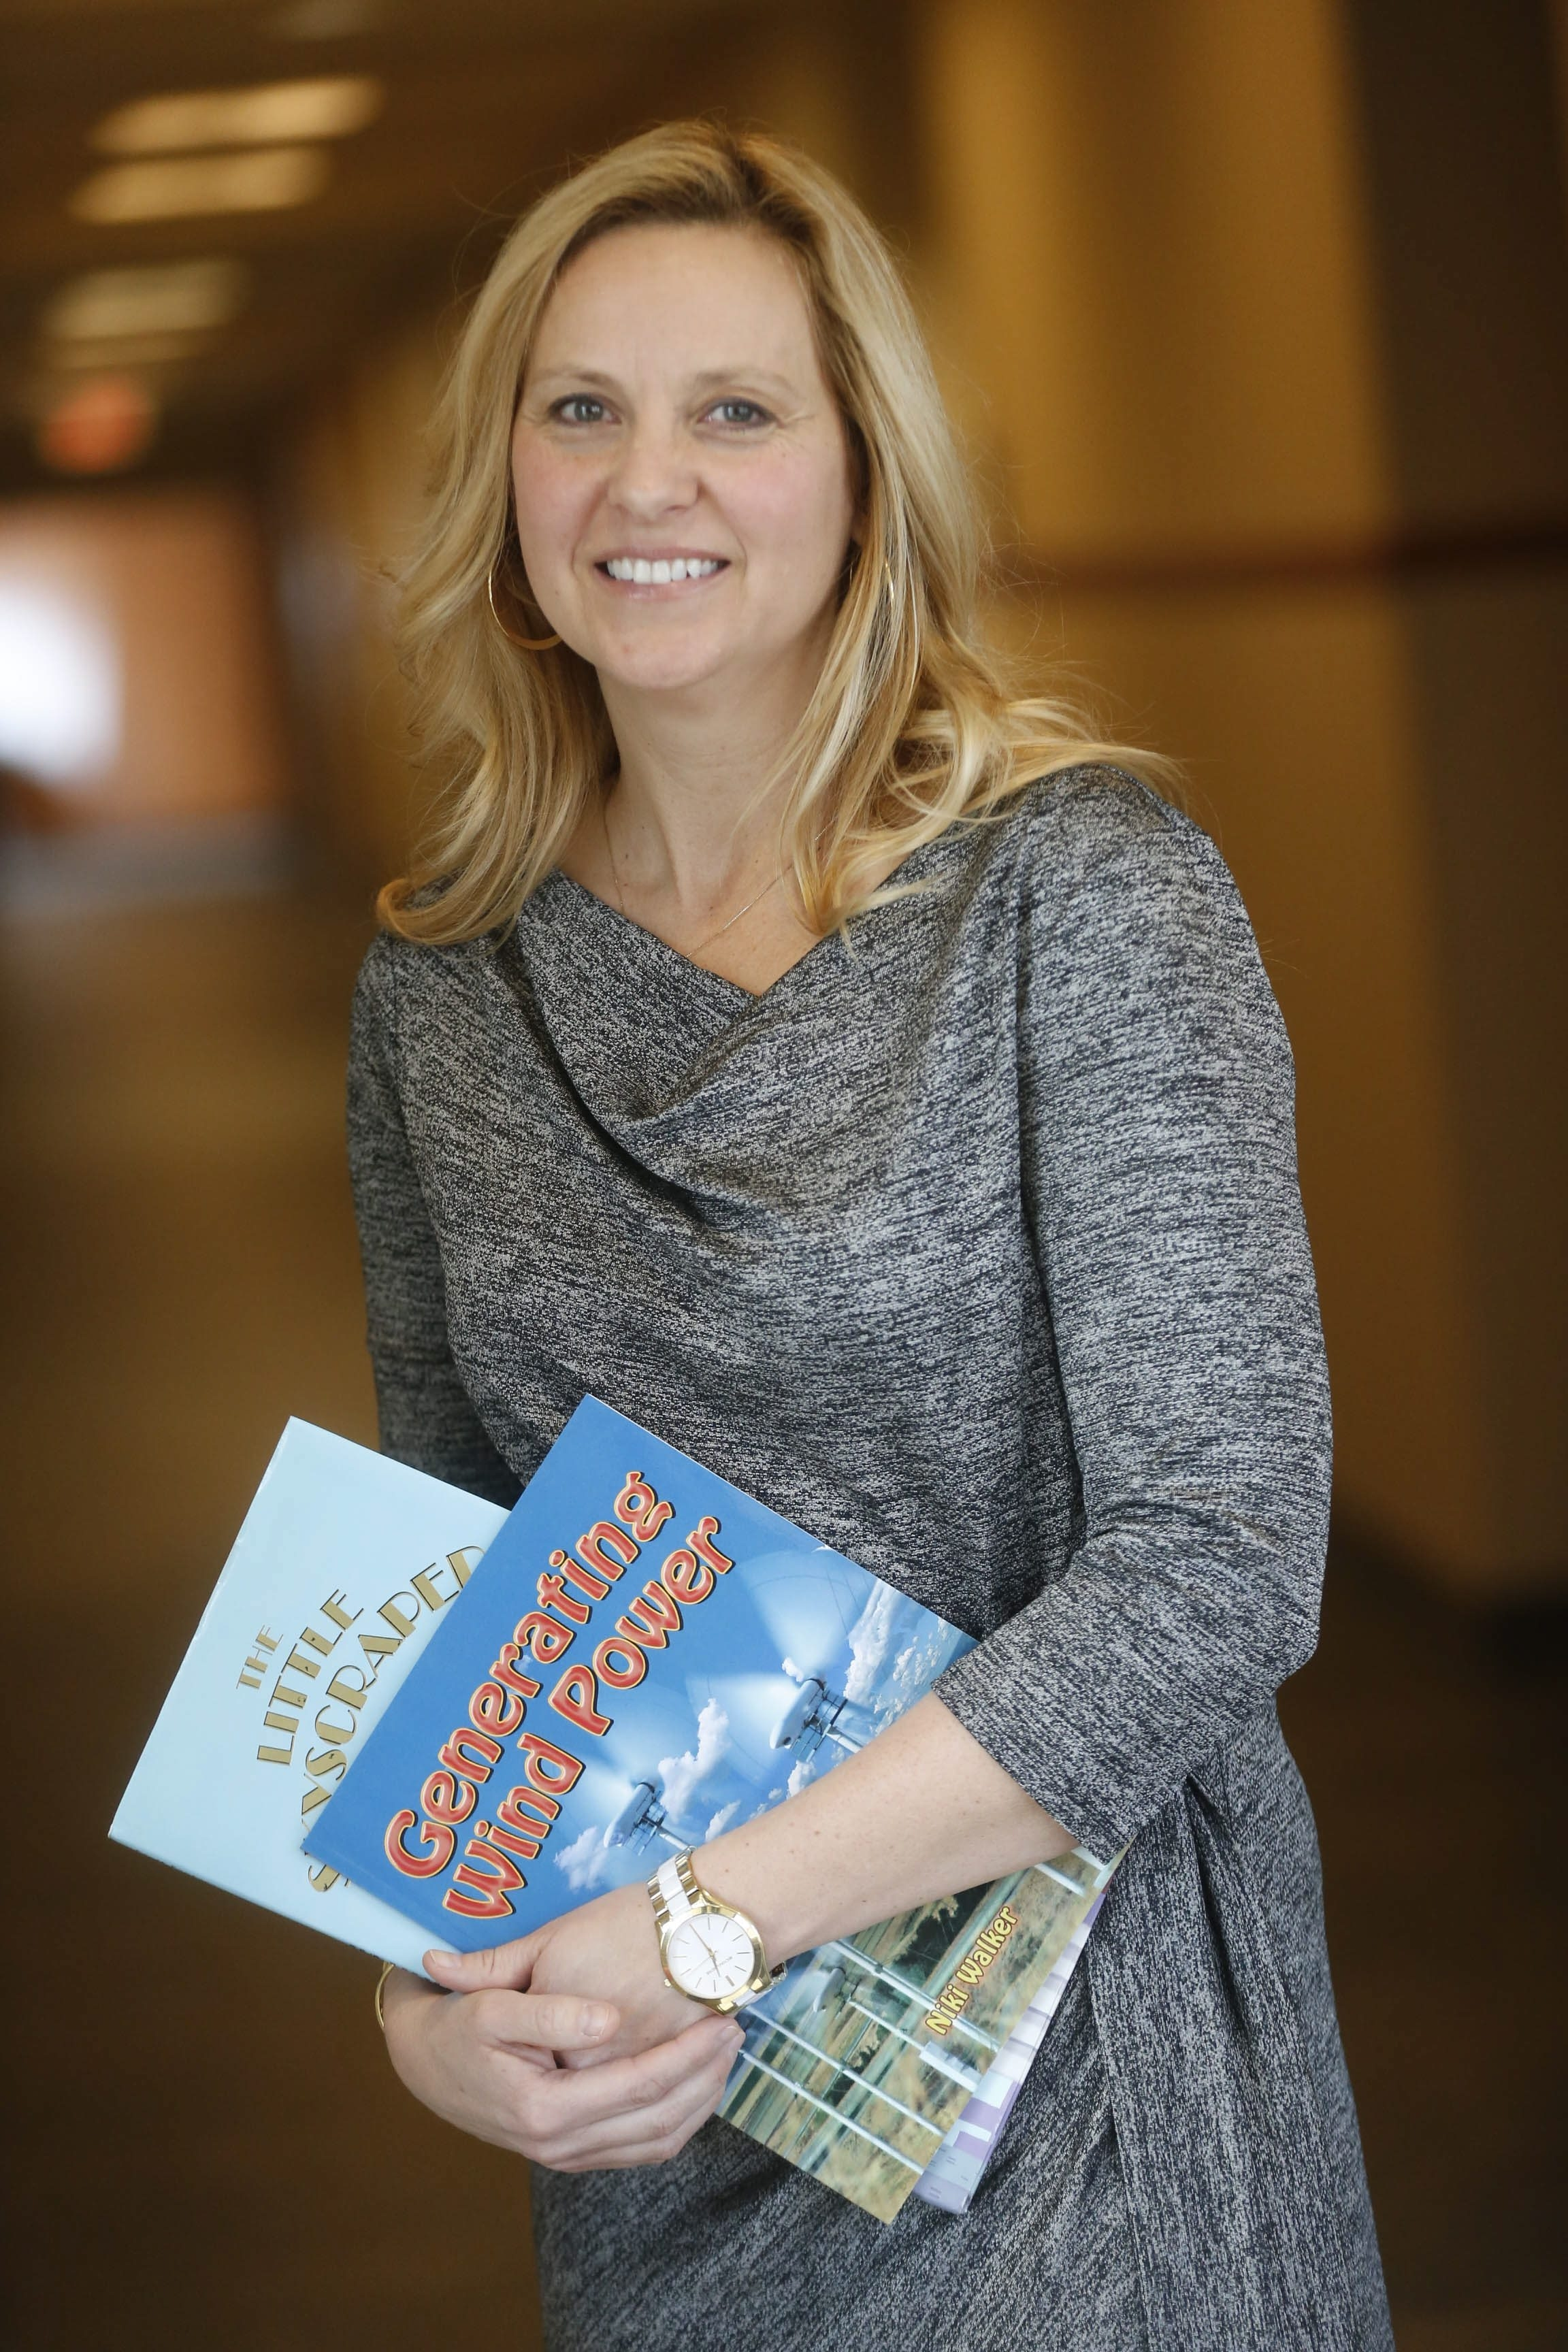 Kathleen McGrath of the Family Literacy Center at Niagara University believes reading can change lives.